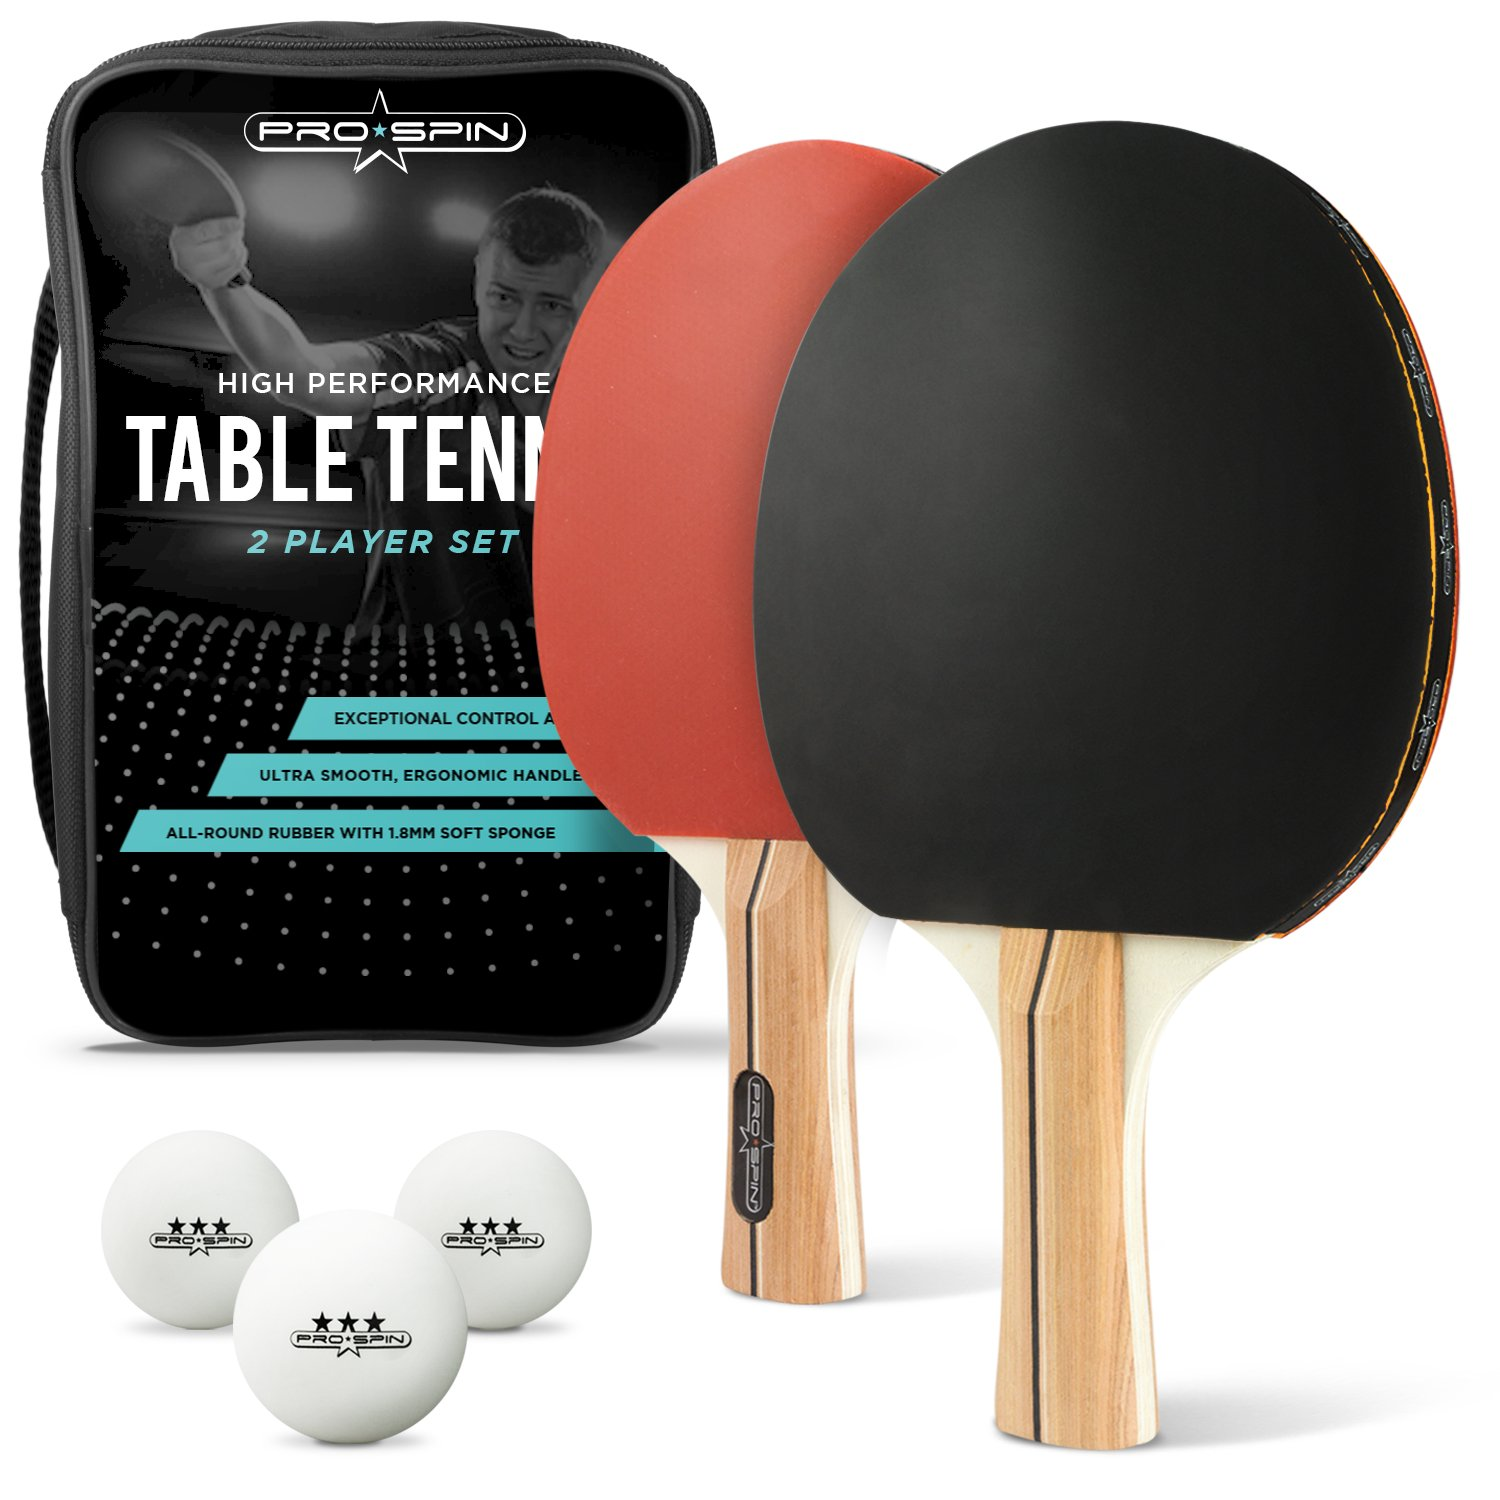 Miraculous Pro Spin Ping Pong Paddle Set 2 High Performance Paddles Rackets 3 Pro Table Tennis Balls Premium Storage Case Professional Table Tennis Set For Download Free Architecture Designs Embacsunscenecom